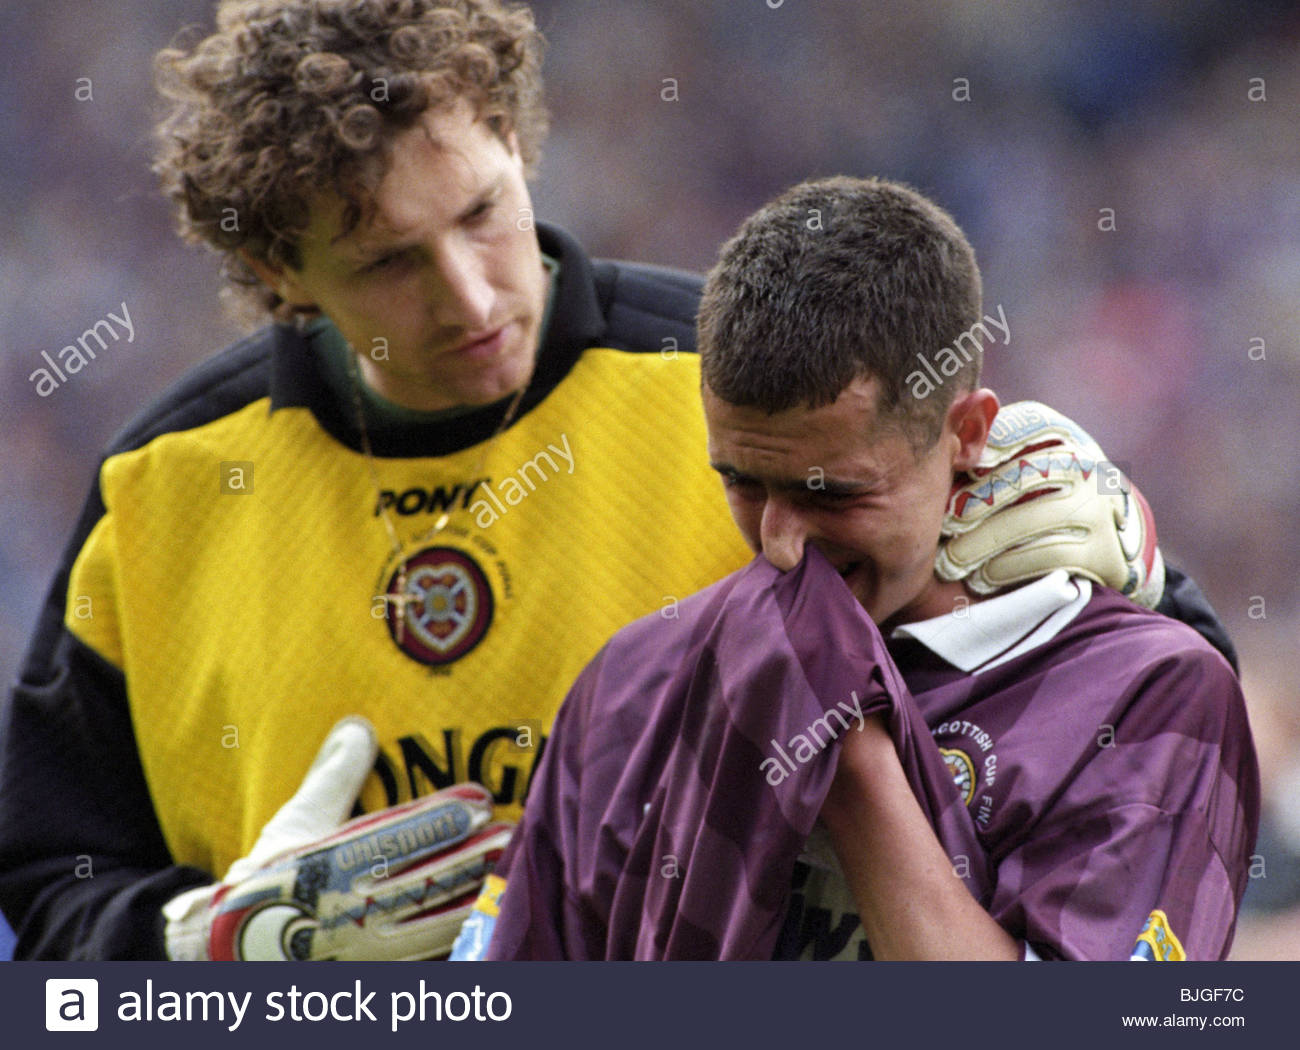 18/05/96 TENNENT'S SCOTTISH CUP FINAL RANGERS V HEARTS (5-1) HAMPDEN - GLASGOW A tearful Allan McManus (right) - Stock Image